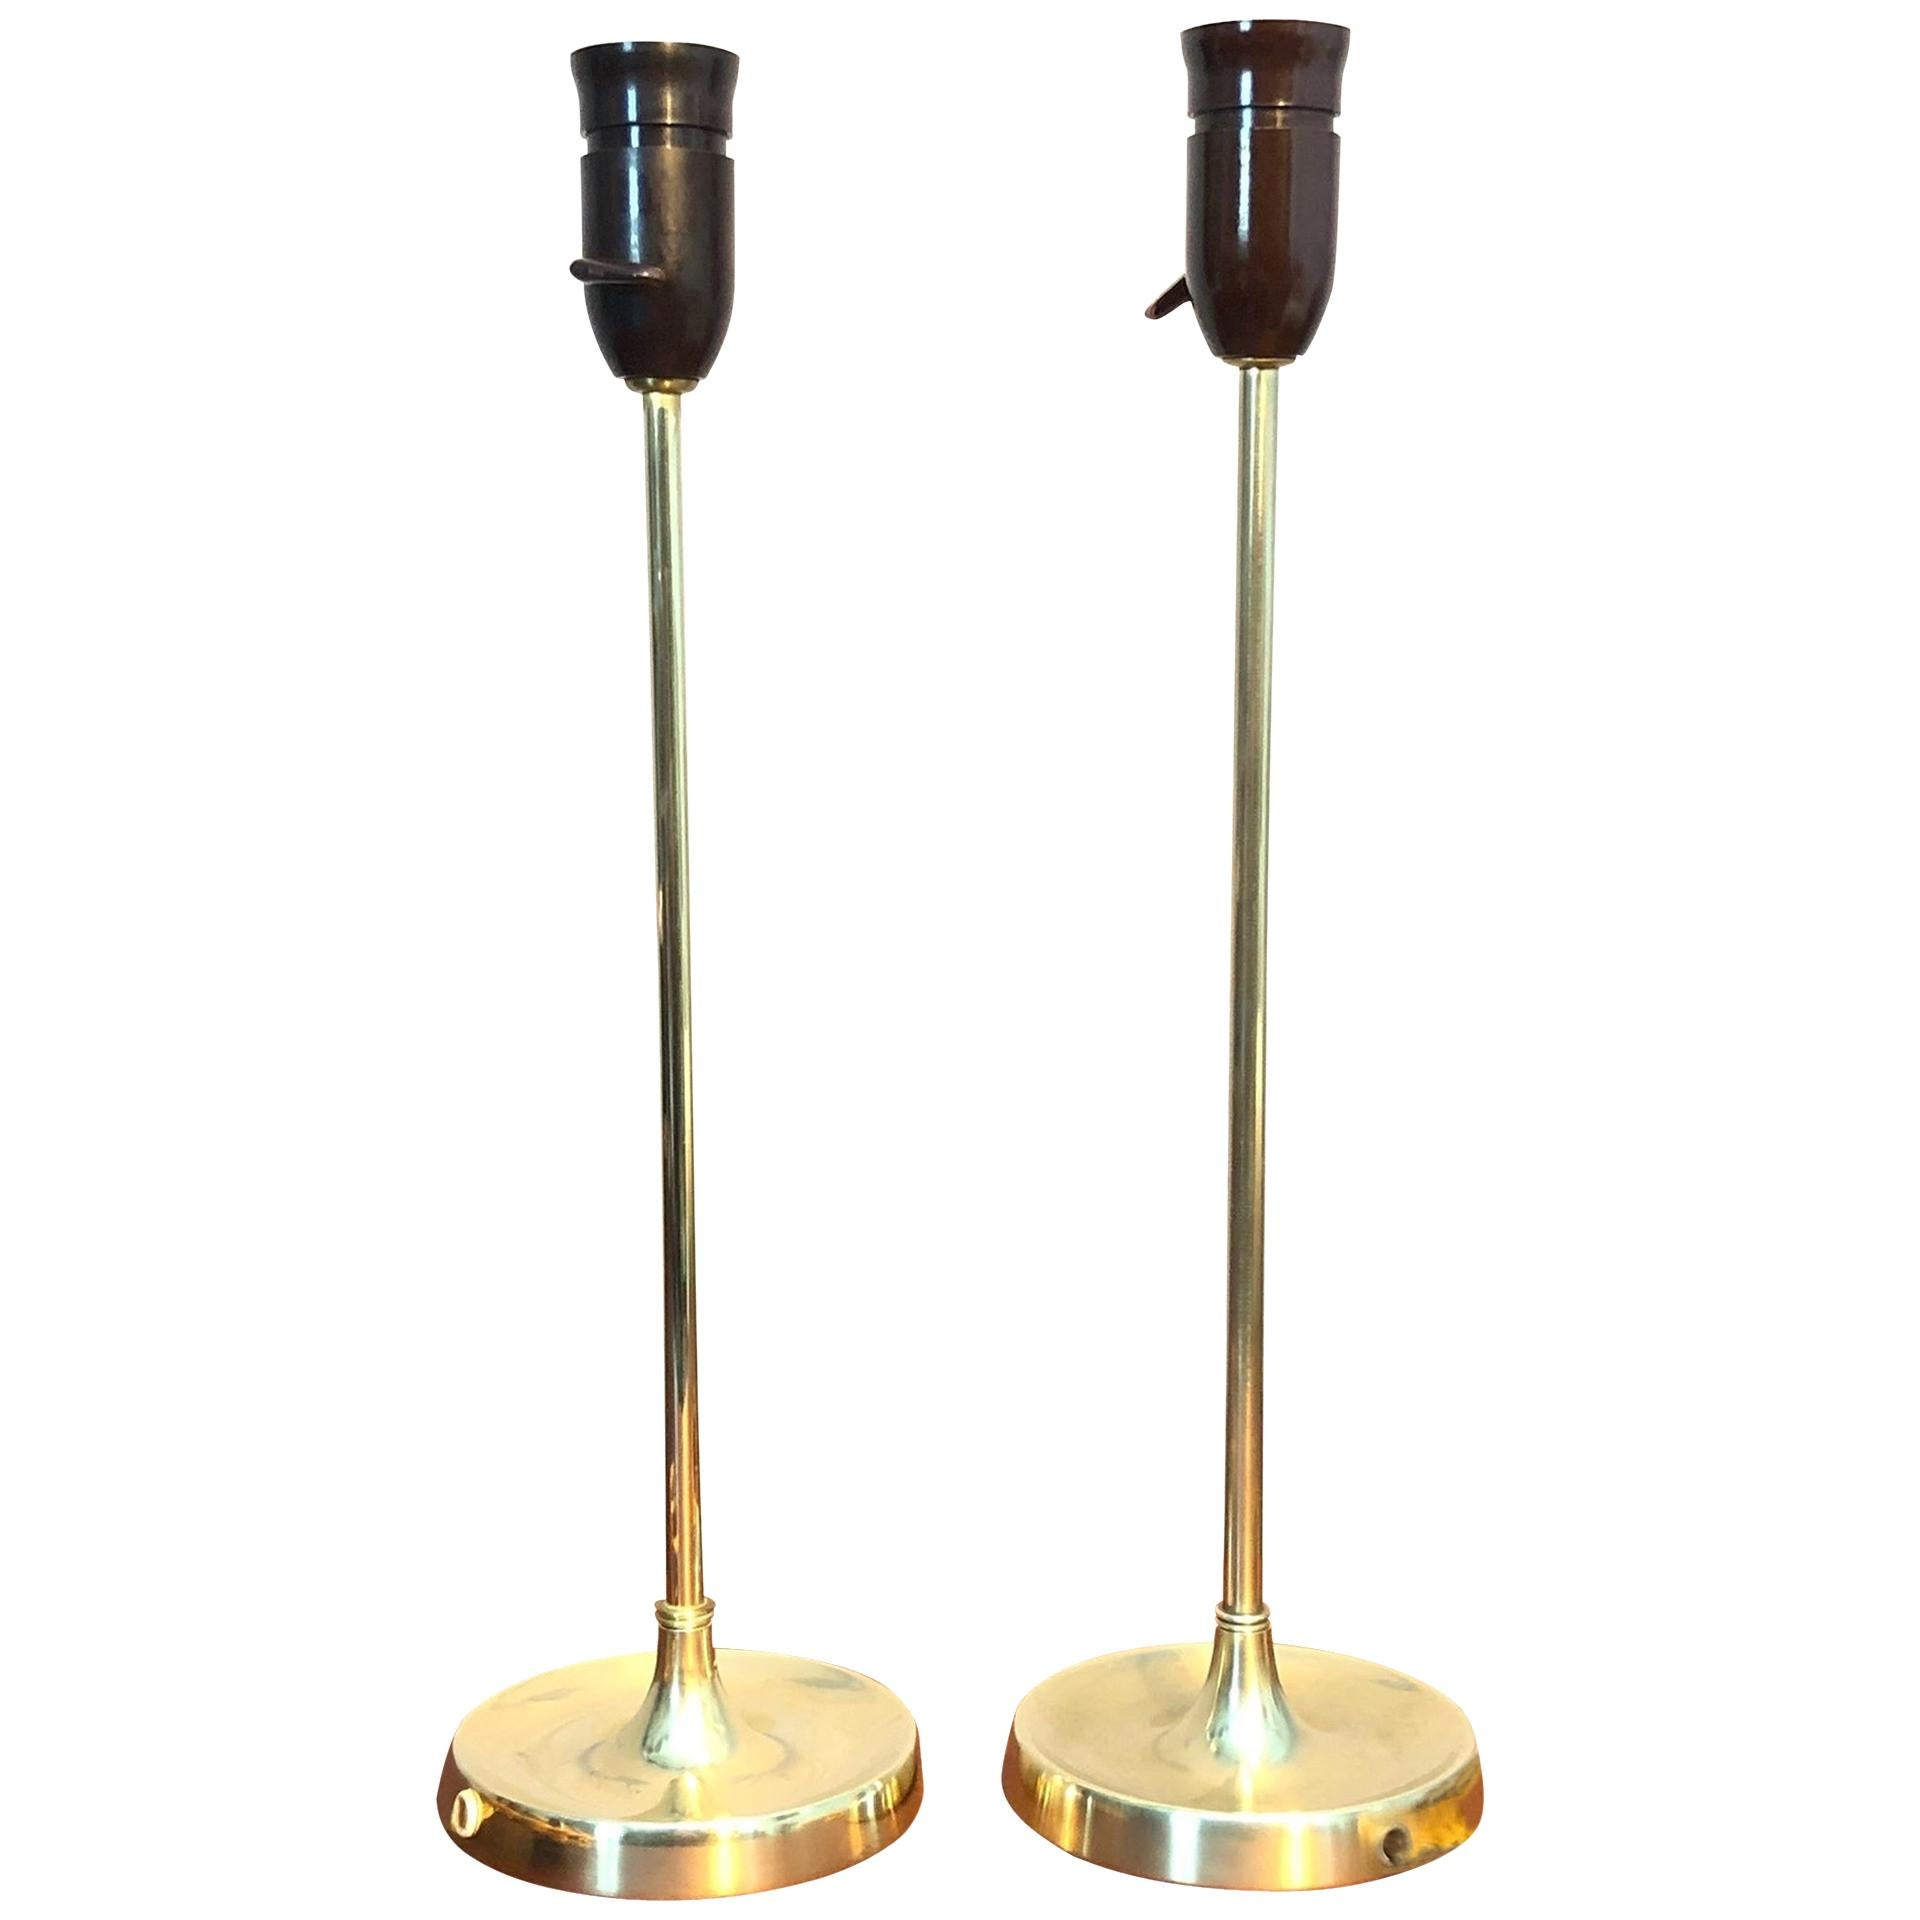 Vintage Pair of Brass Table Lamps by Esben Klint for Le Klint from the 1950s